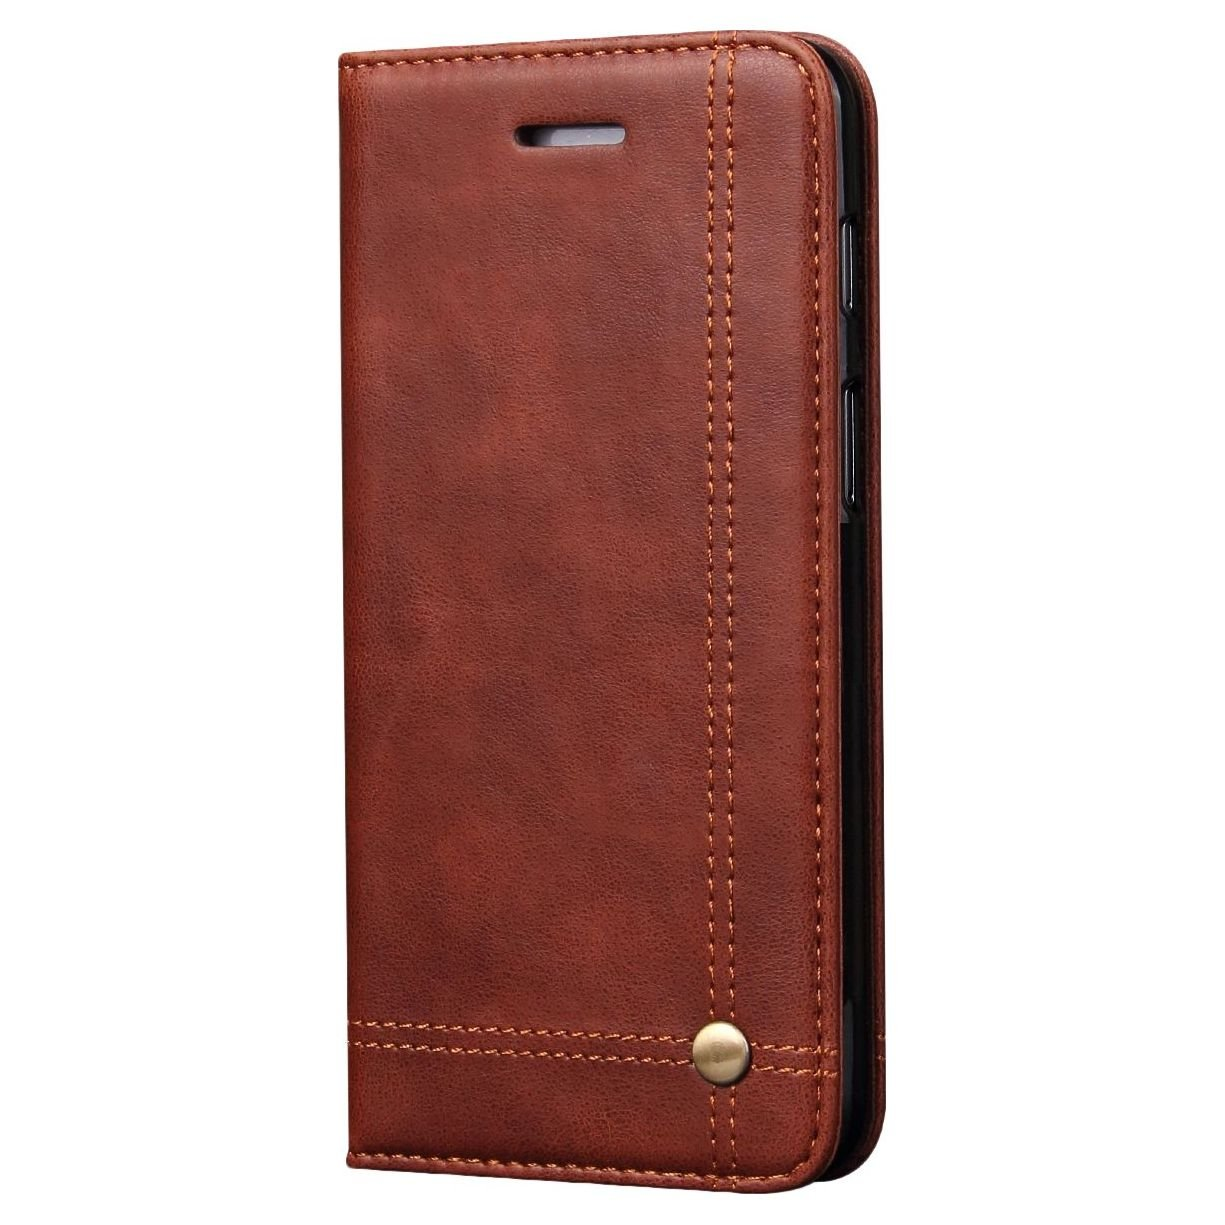 Pirum Magnetic Flip Cover for Oneplus 6 One Plus 6 - Leather Case Wallet Slim Folio Book Cover with Credit Card Slots Cash Pocket Stand Holder - Brown (B07DFTN75Y) Amazon Price History, Amazon Price Tracker